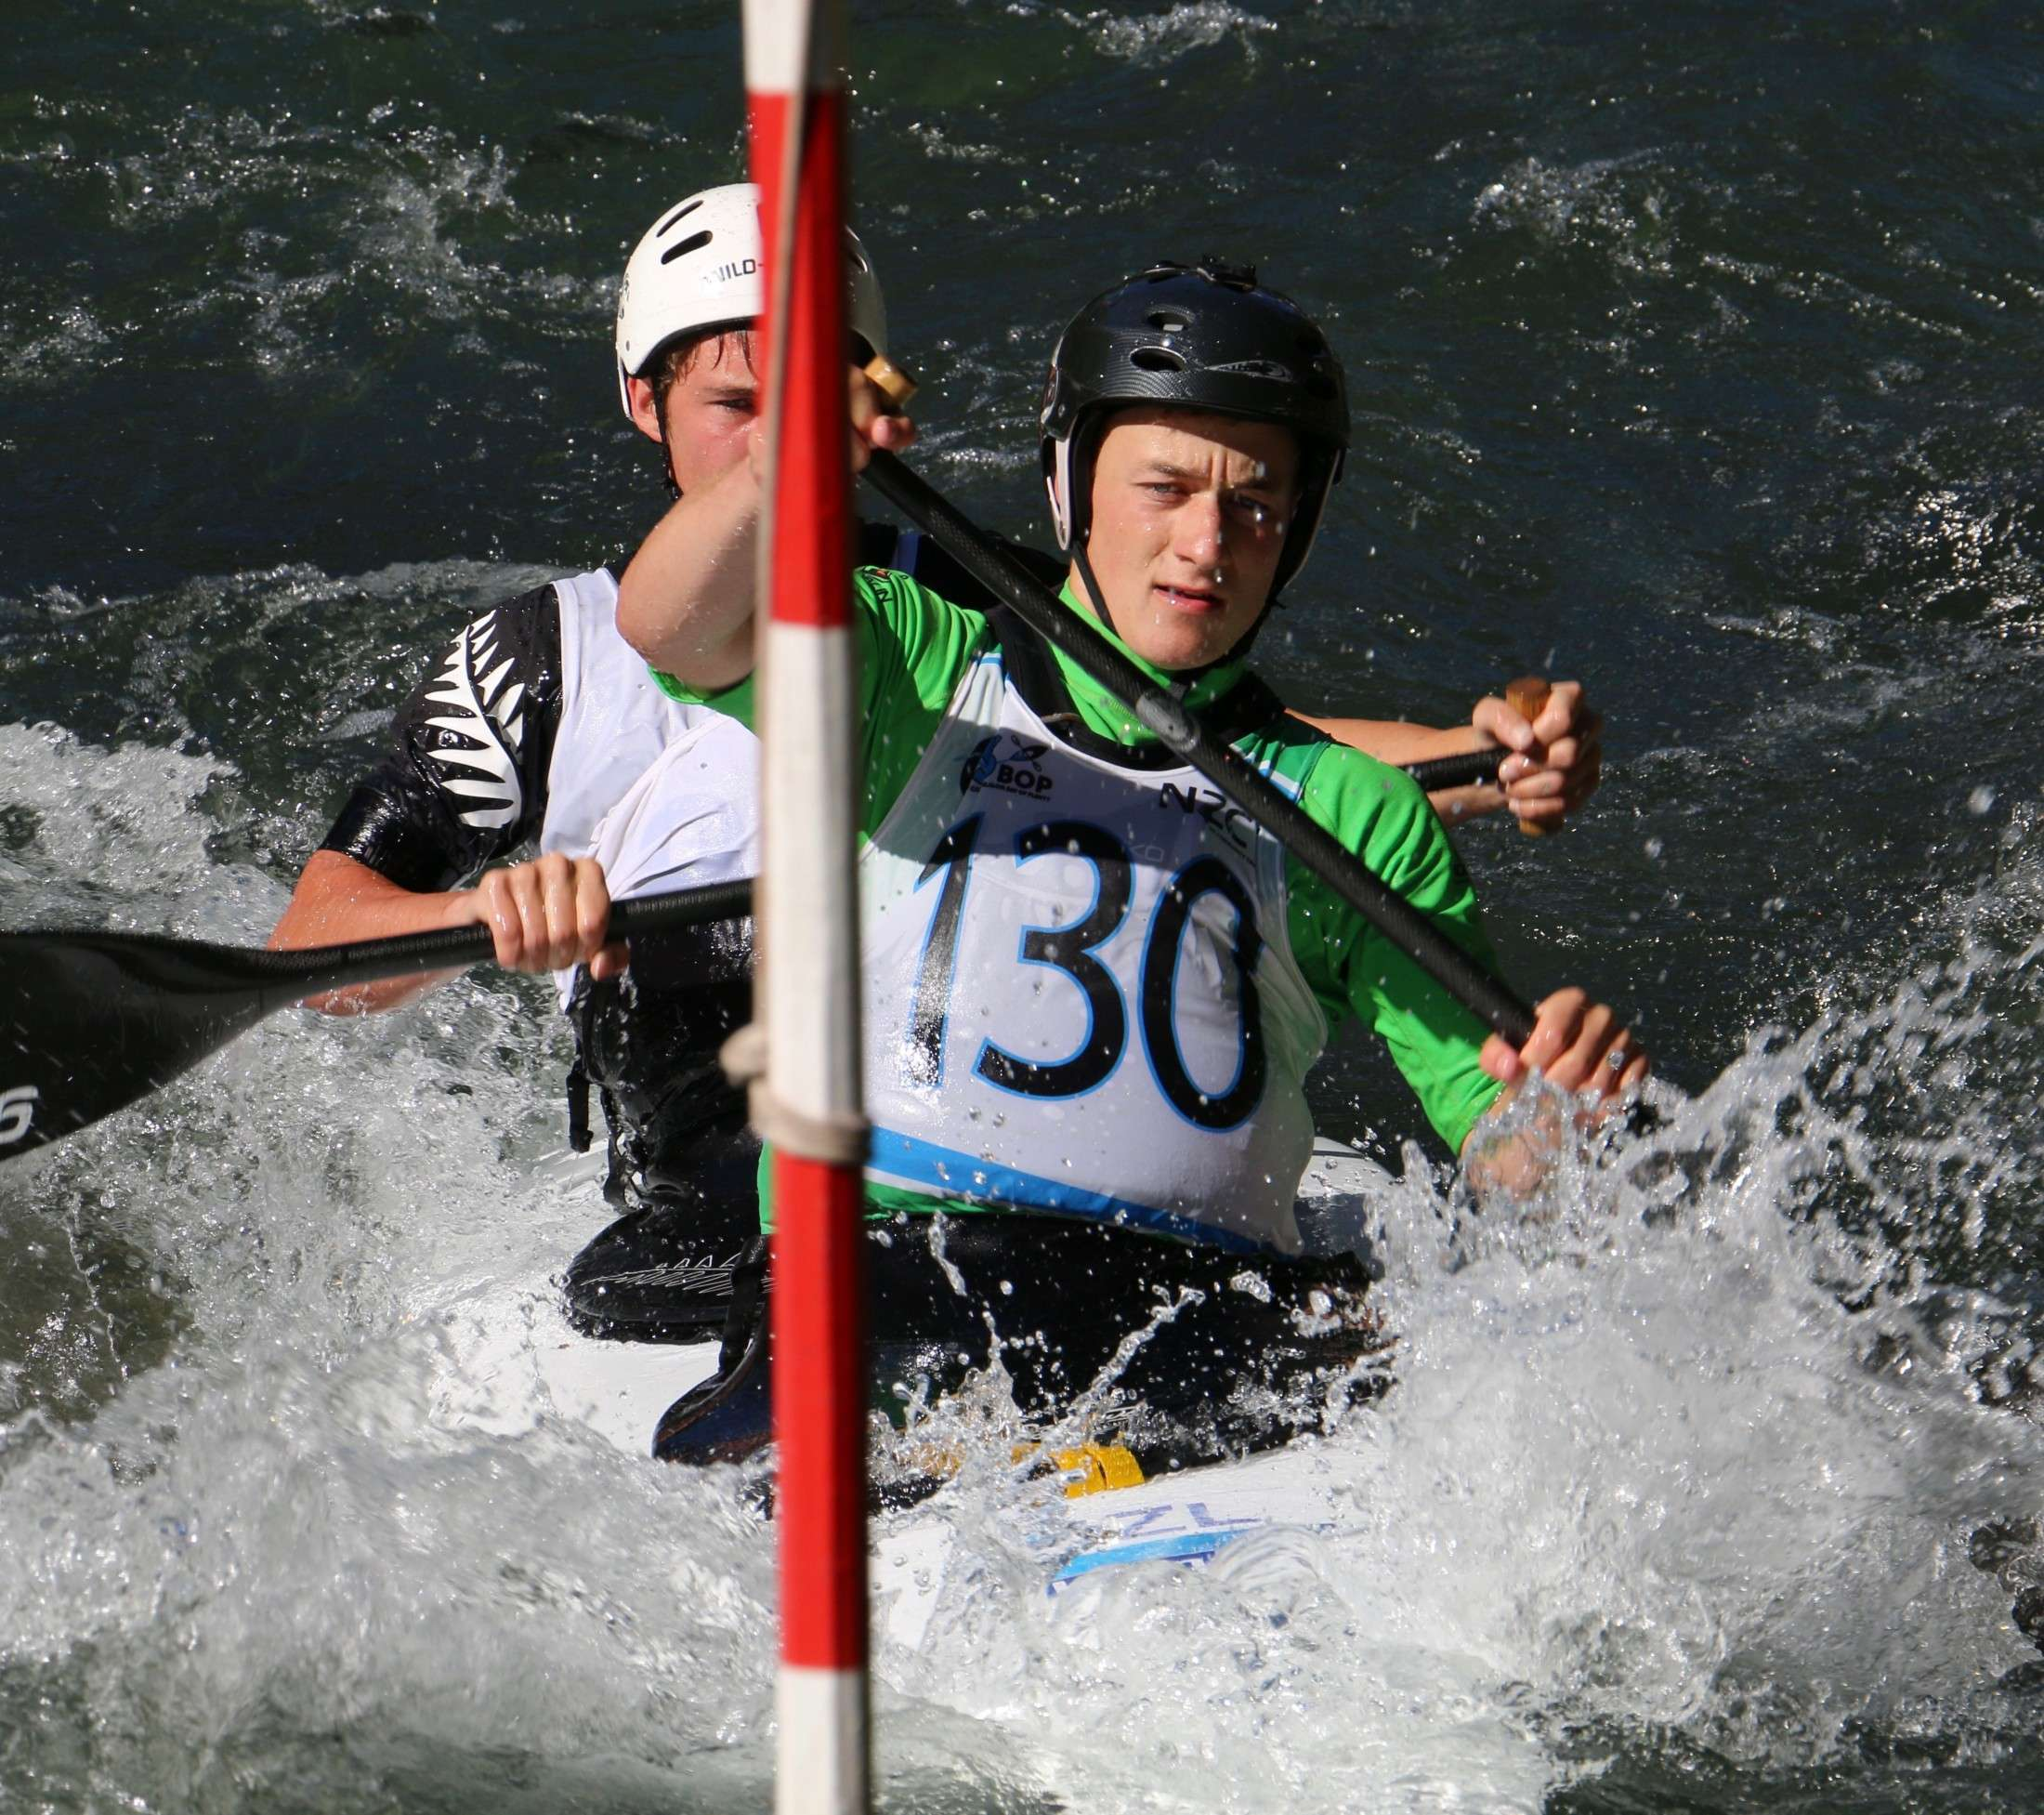 Canoe Slalom - How to get involved - Titans Sports  -  Tauranga Boys' College